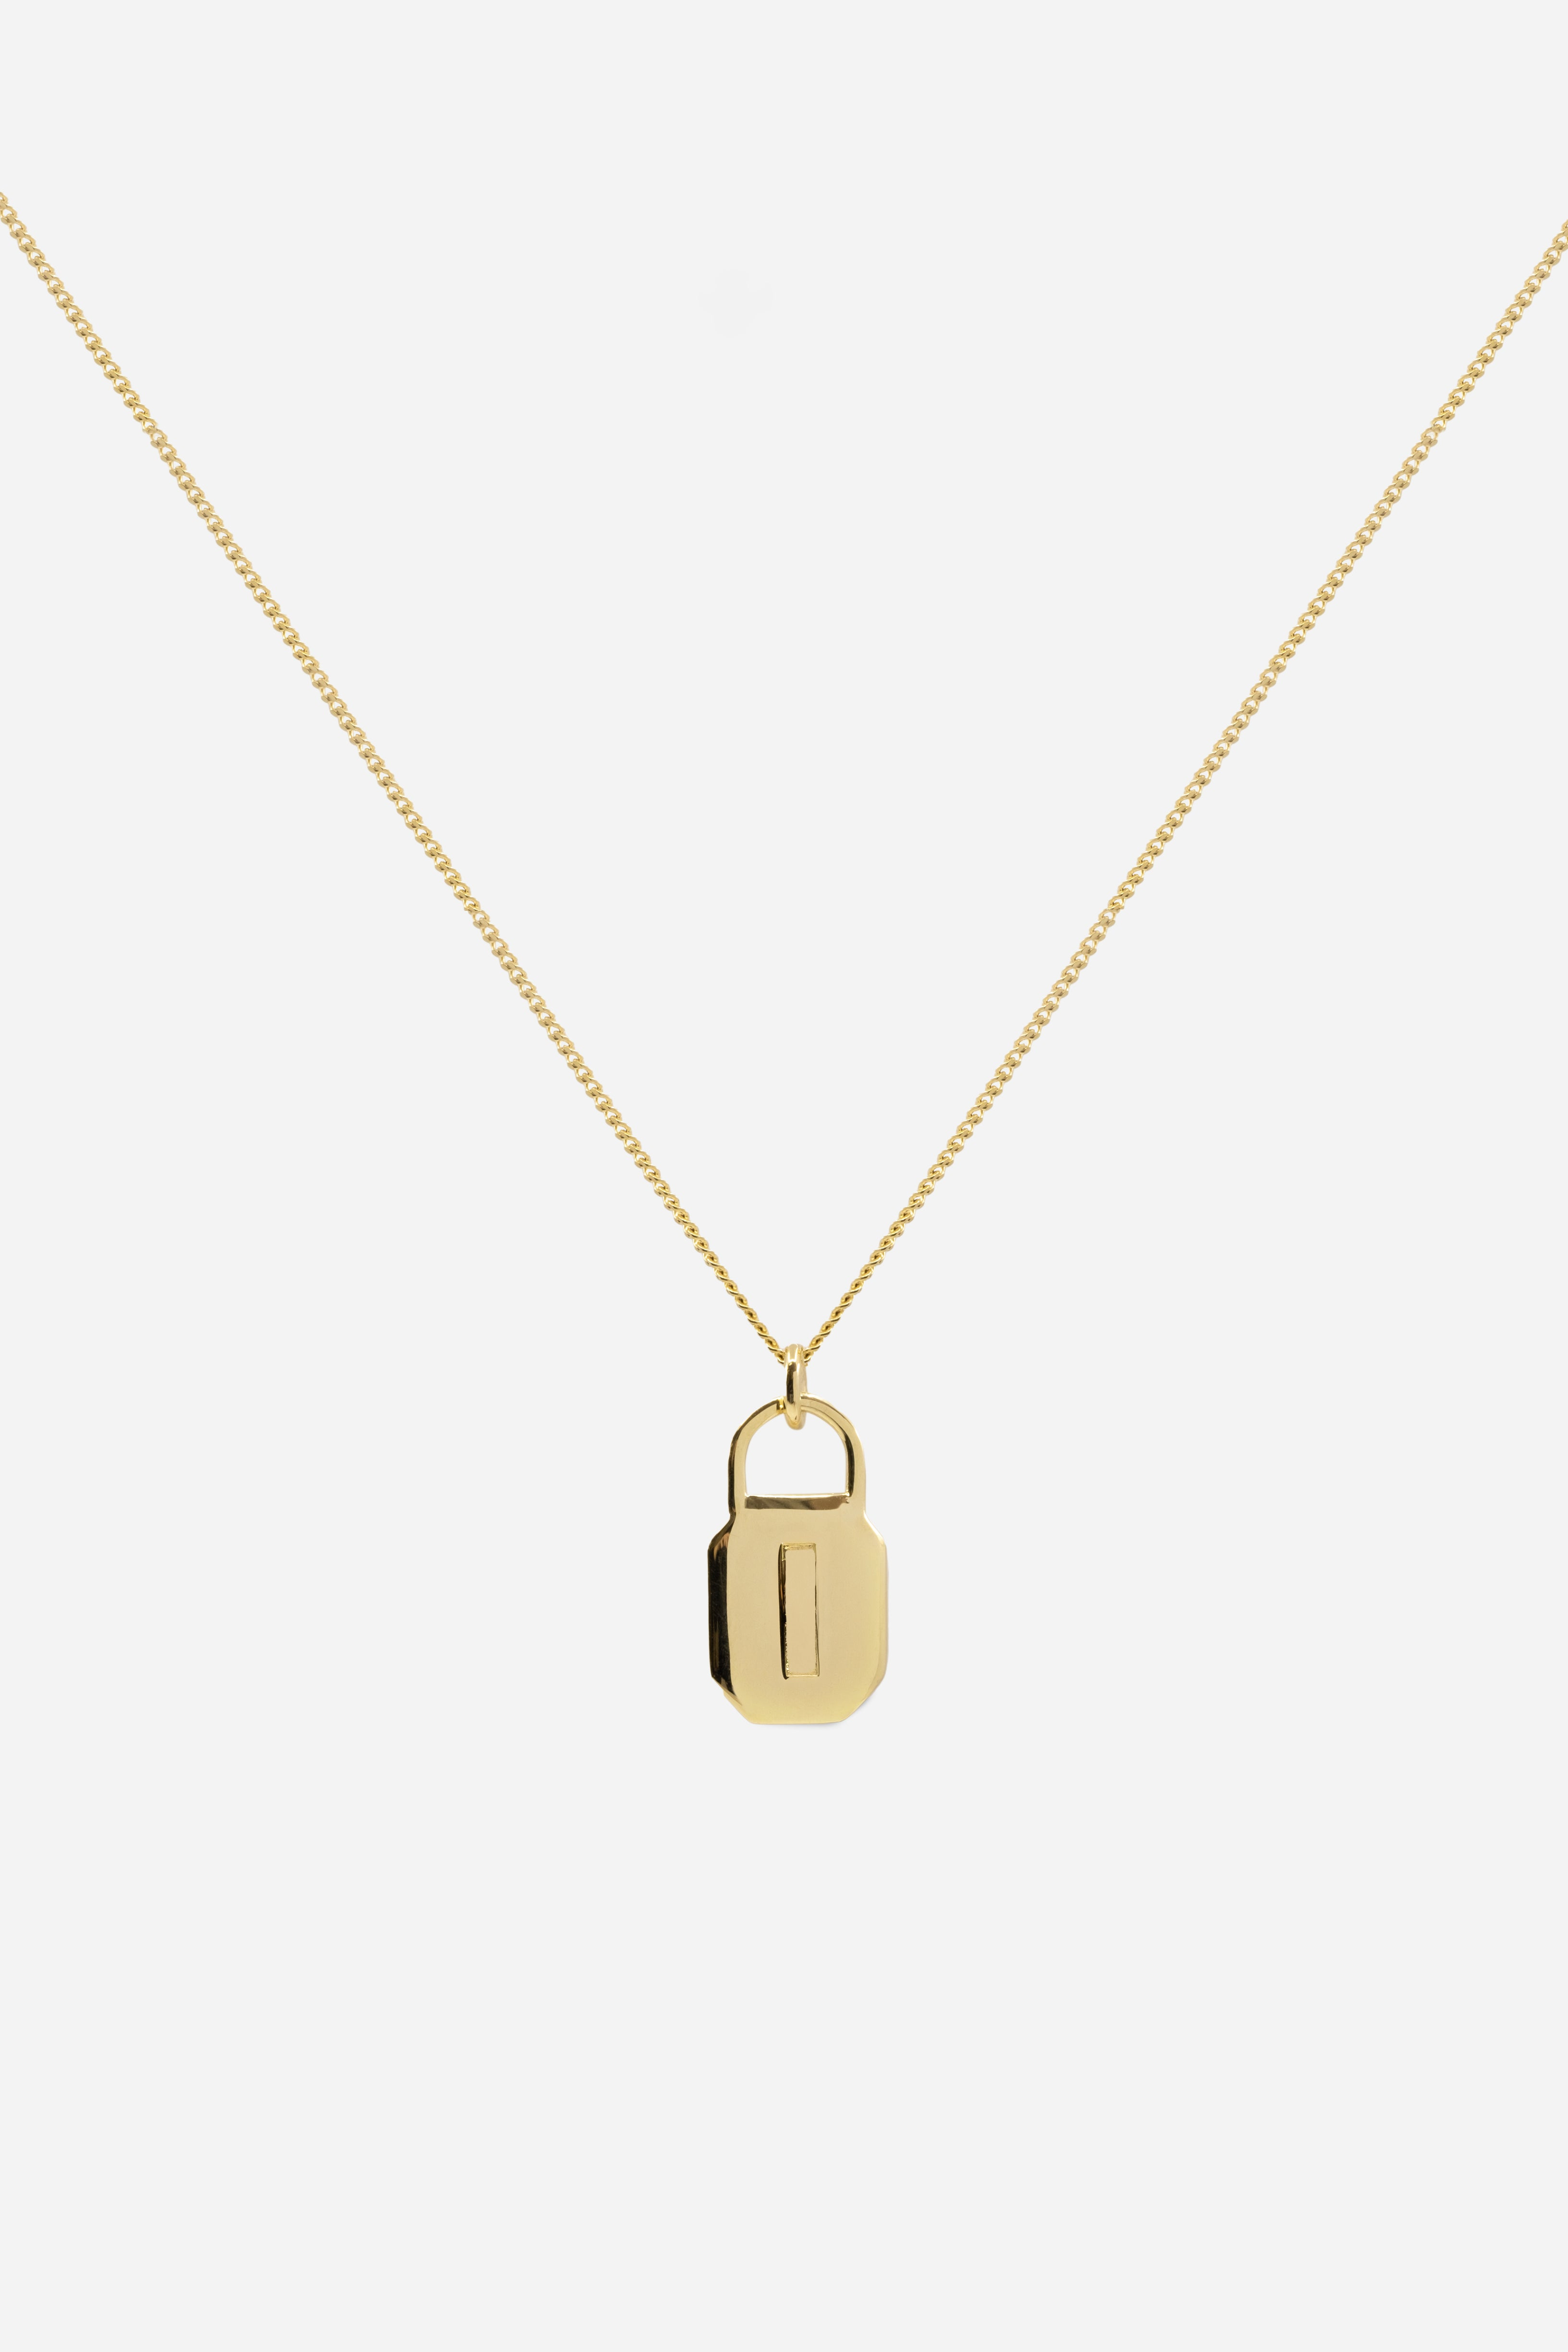 Octagon Lock Necklace | 9K Yellow Gold